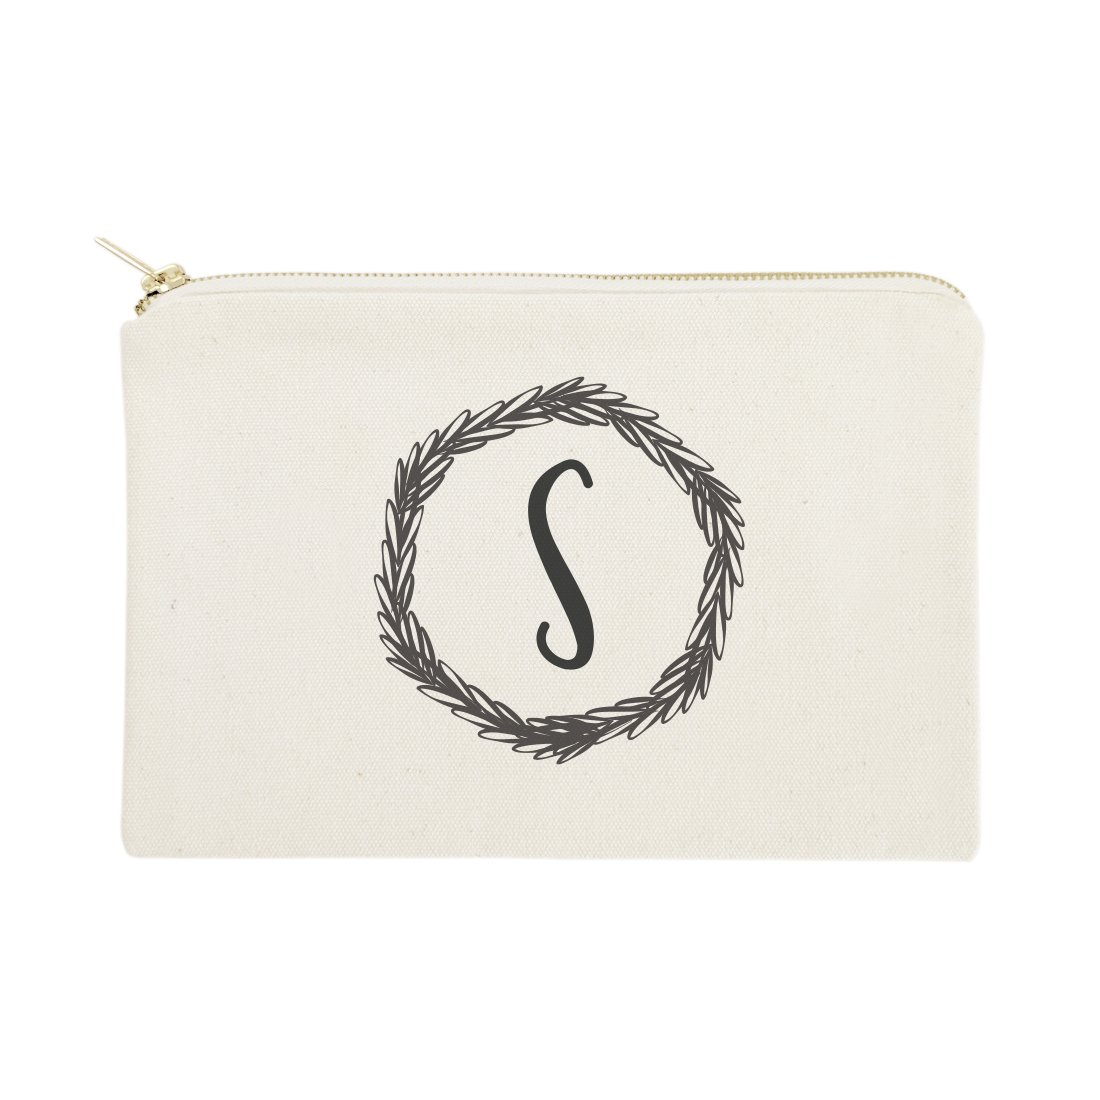 The Cotton & Canvas Co. Personalized Monogram with Wreath Cosmetic Bag and Travel Makeup Pouch